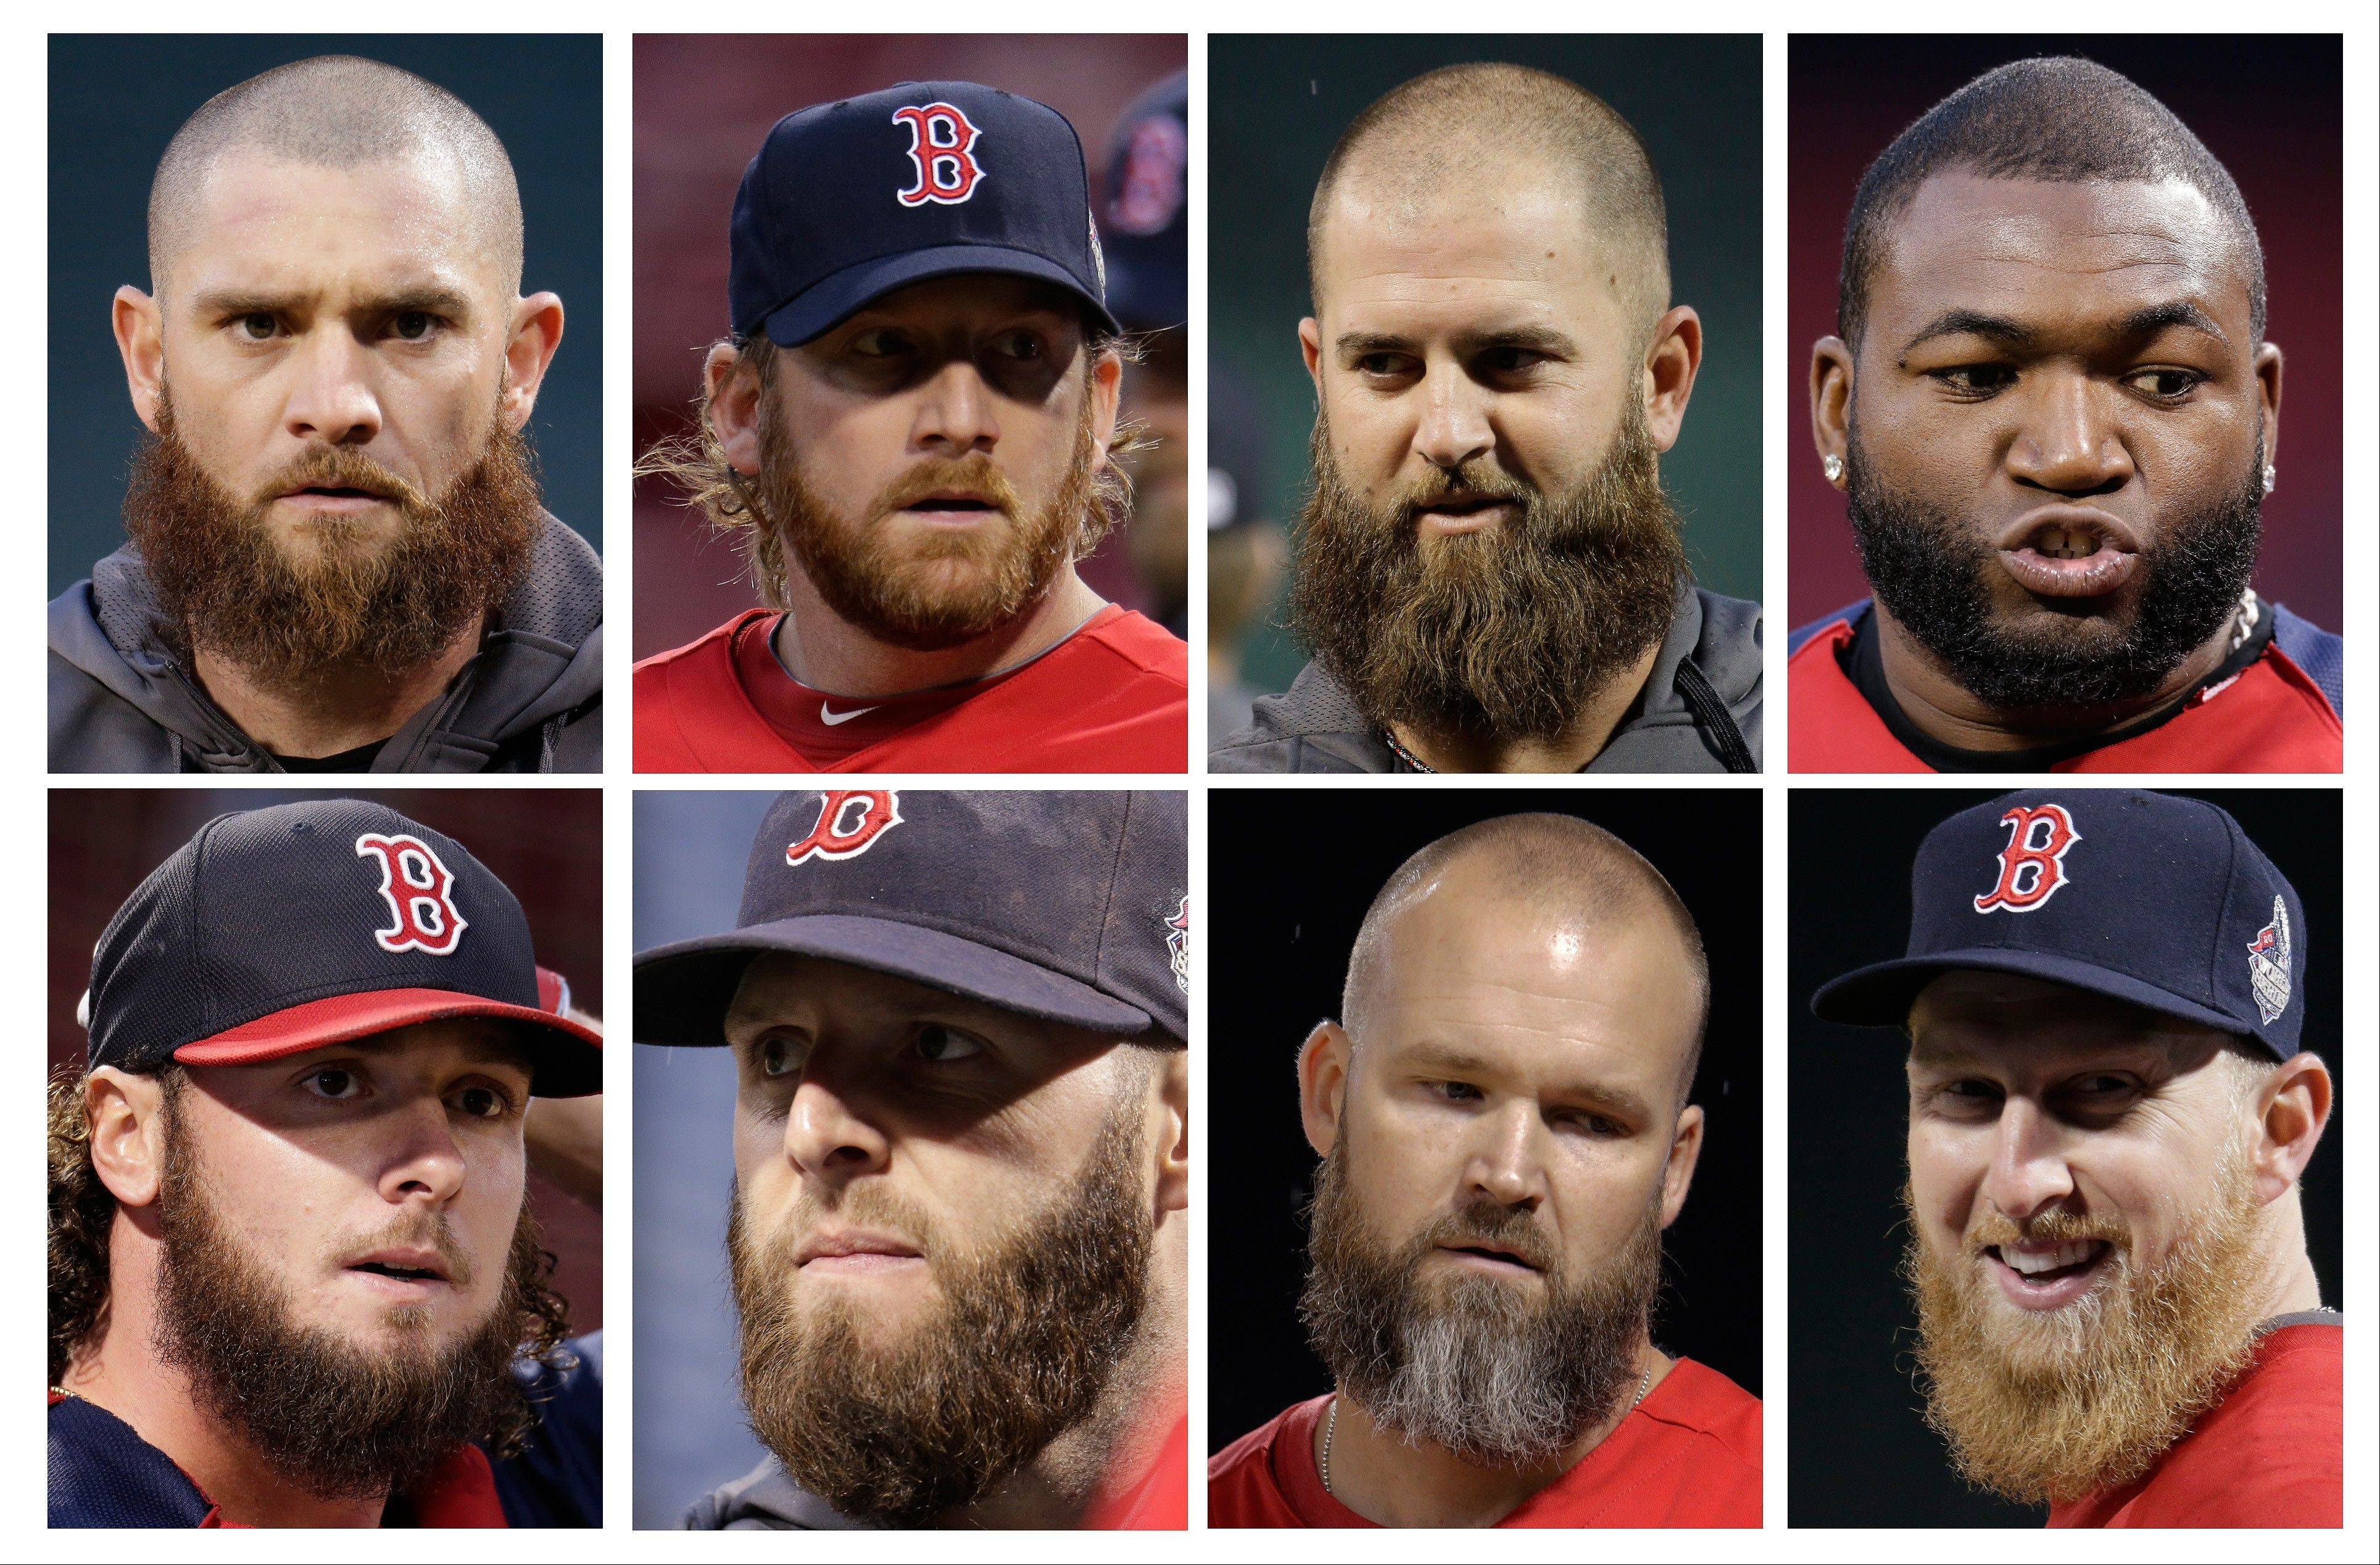 Here are some bearded Boston Red Sox players. Top row from left: Jonny Gomes, Ryan Dempster, Mike Napoli and David Ortiz. Bottom row from left: Jarrod Saltalamacchia, Dustin Pedroia, David Ross and Mike Carp.